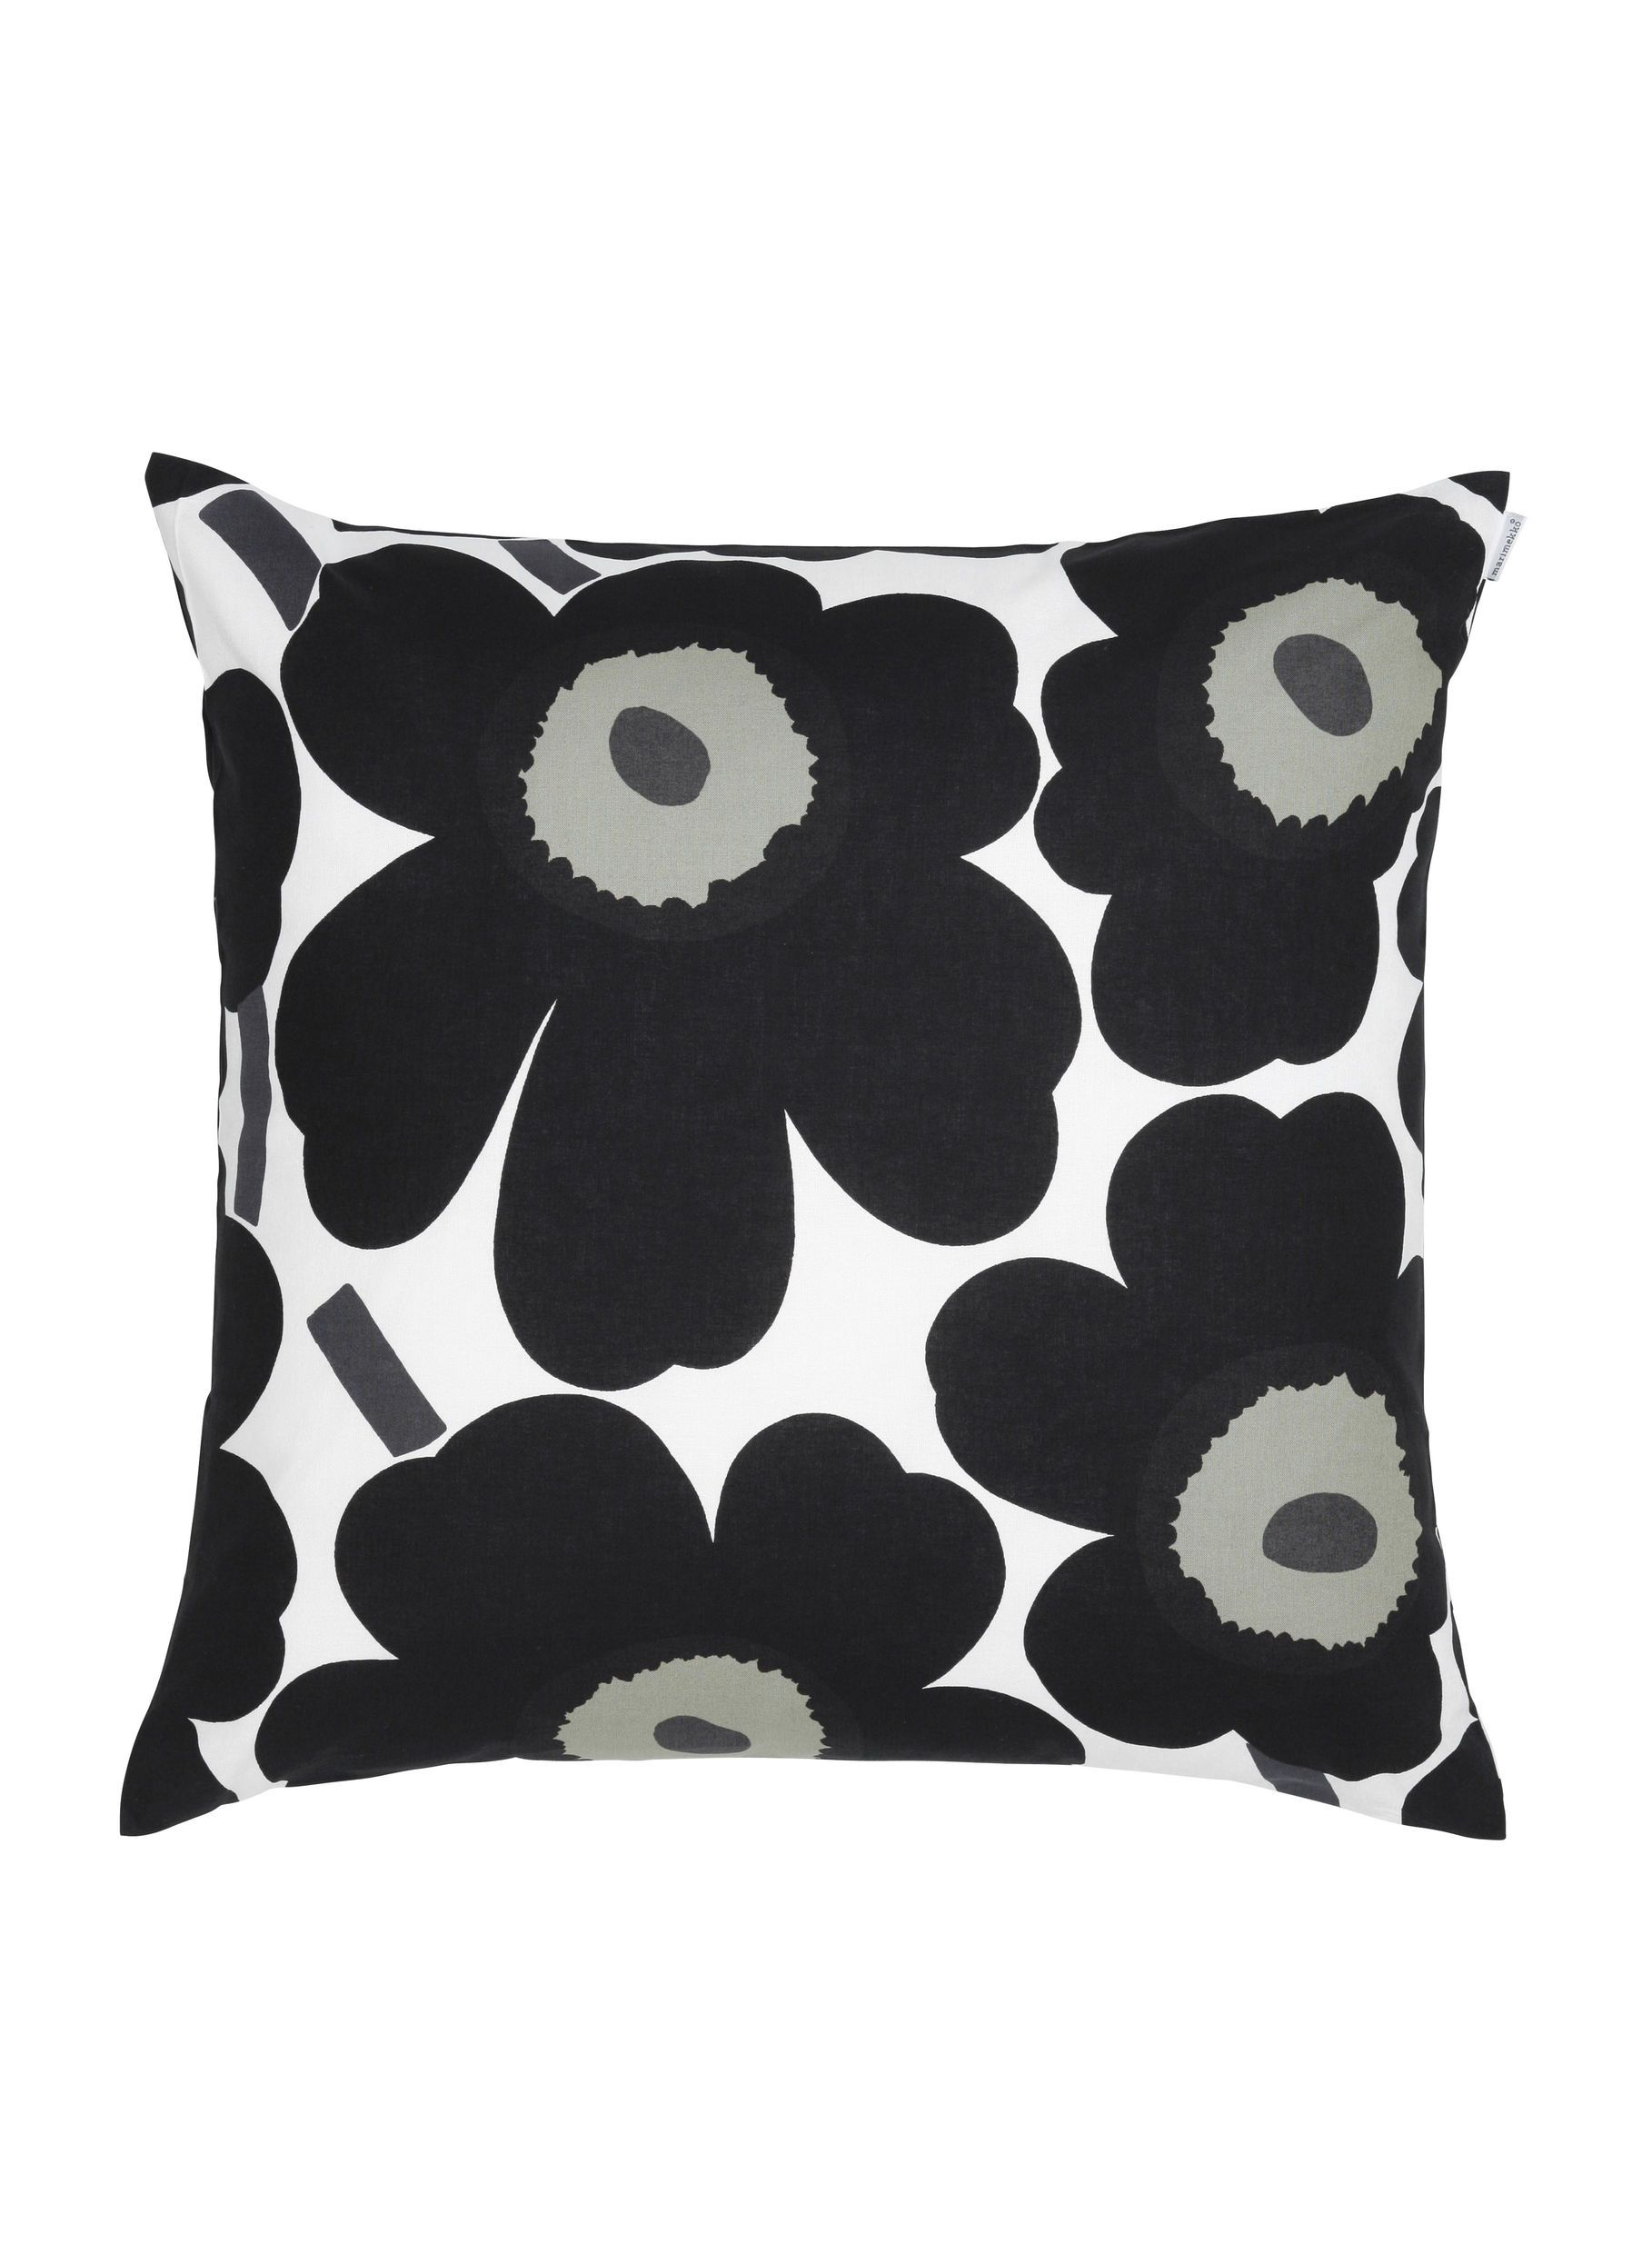 Marimekko, Pieni Unikko Cushion Cover, White/Black- Placewares